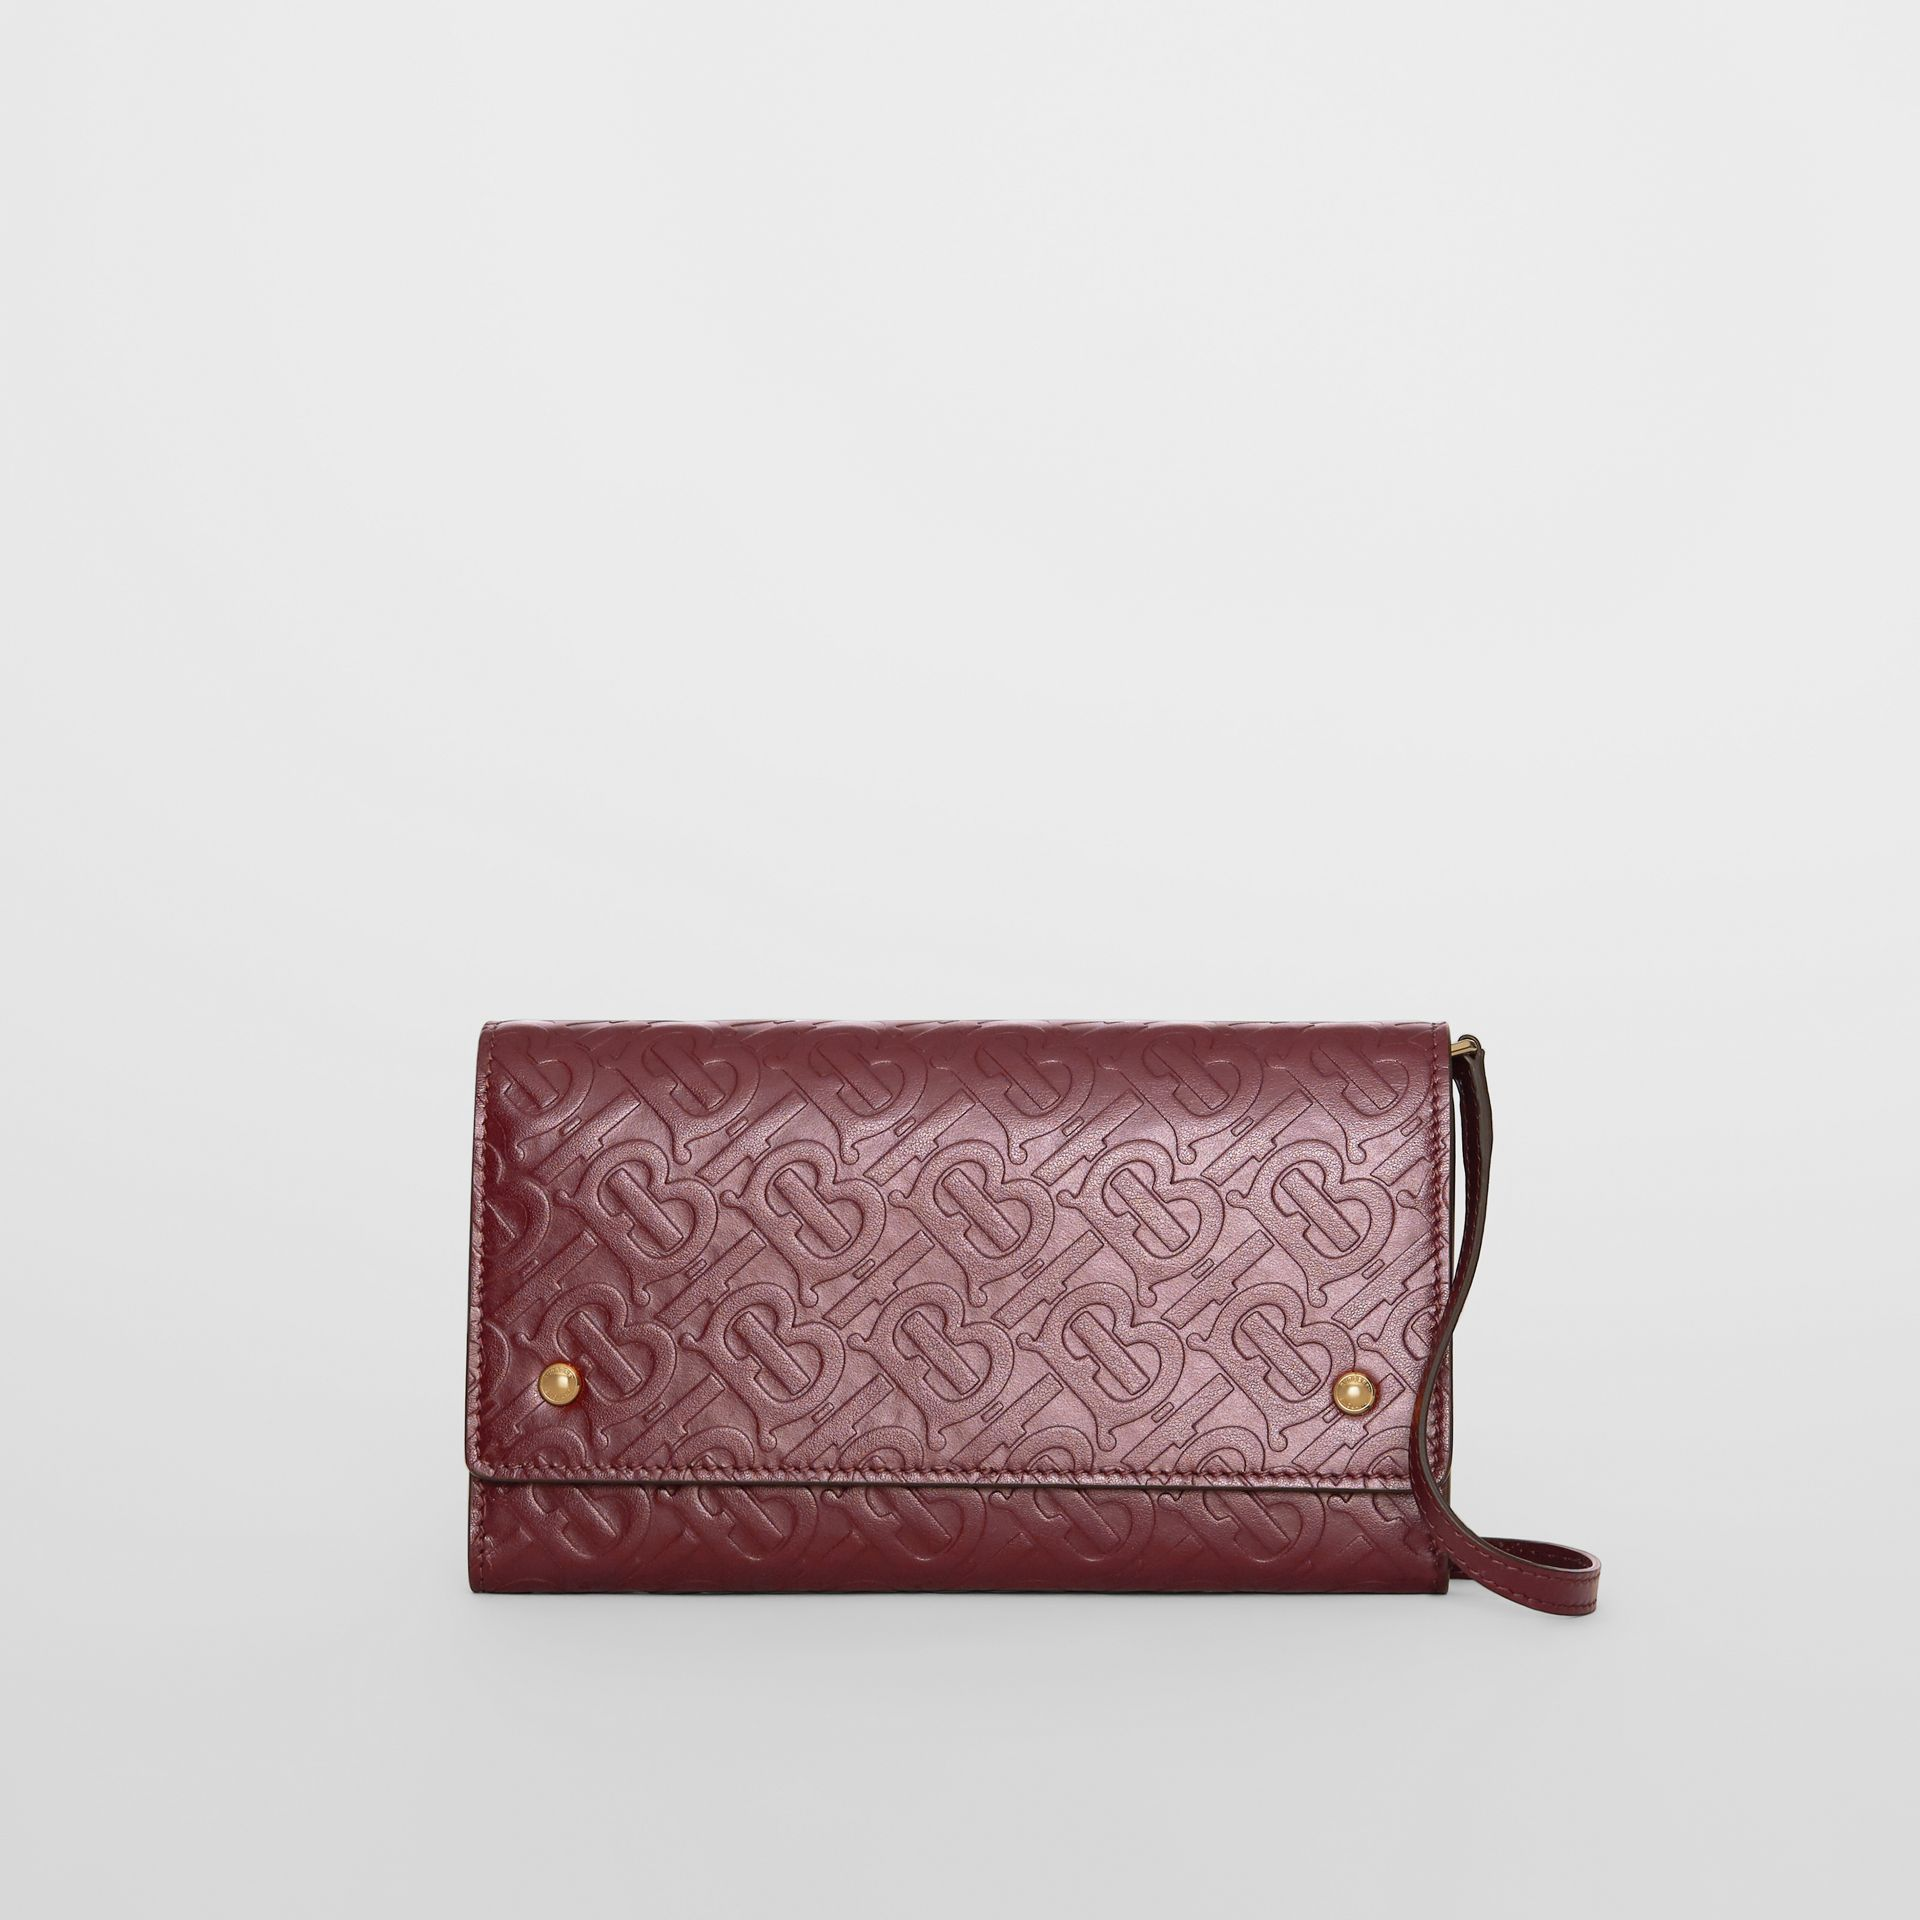 Portefeuille en cuir Monogram avec sangle amovible (Oxblood) - Femme | Burberry - photo de la galerie 0